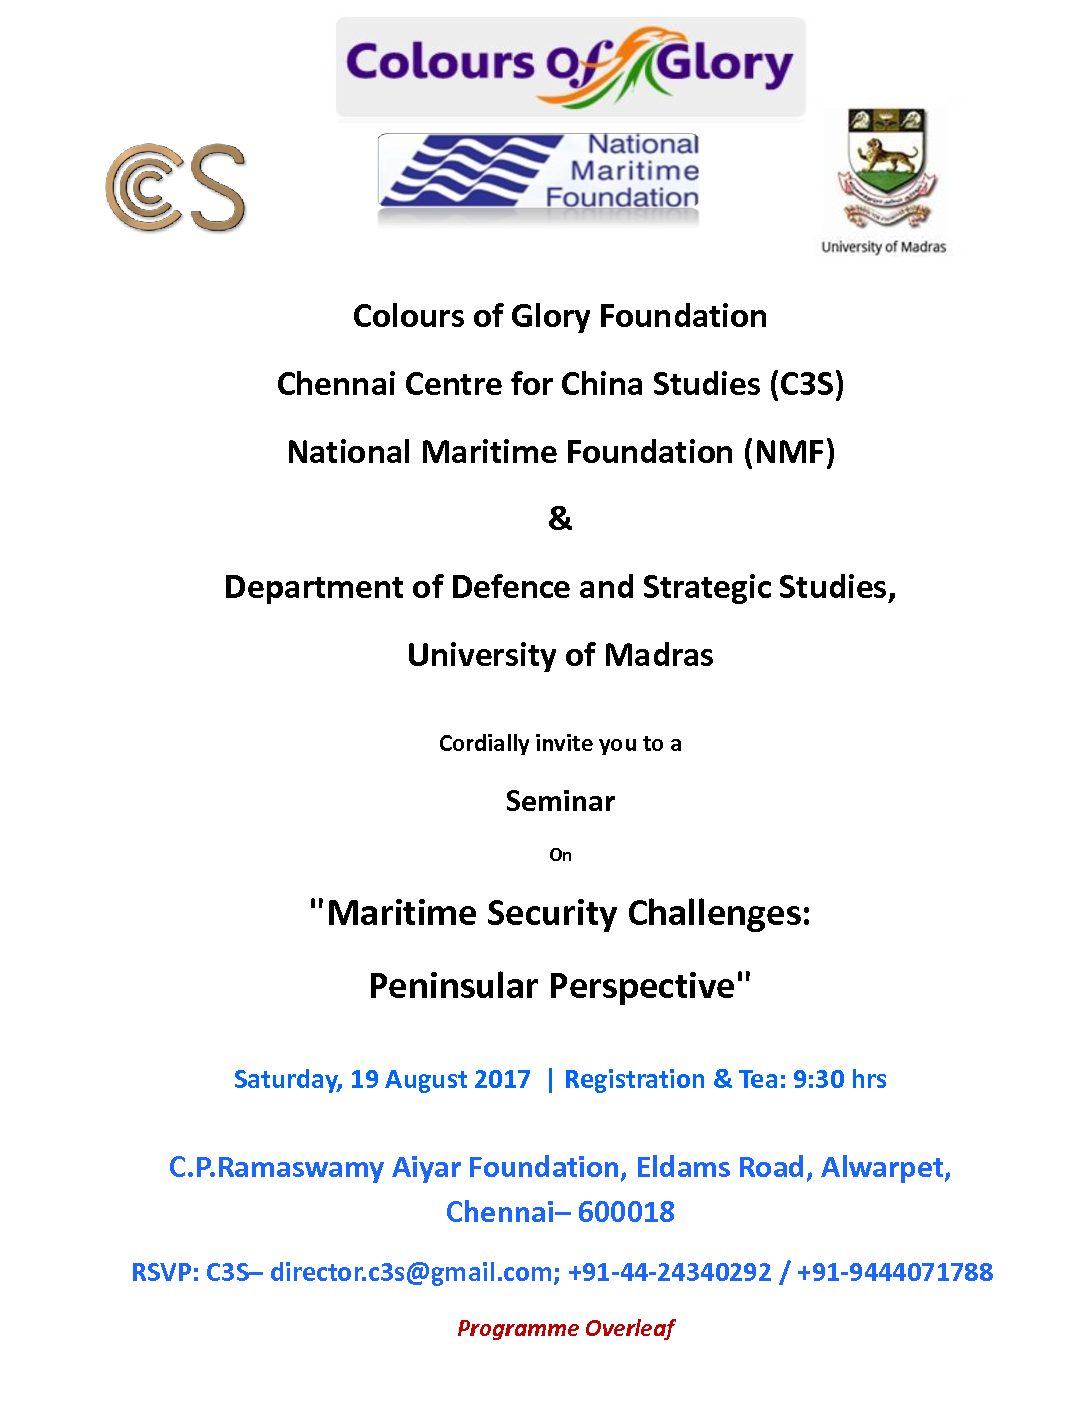 """Seminar On """"Maritime Security Challenges: Peninsular Perspective"""""""